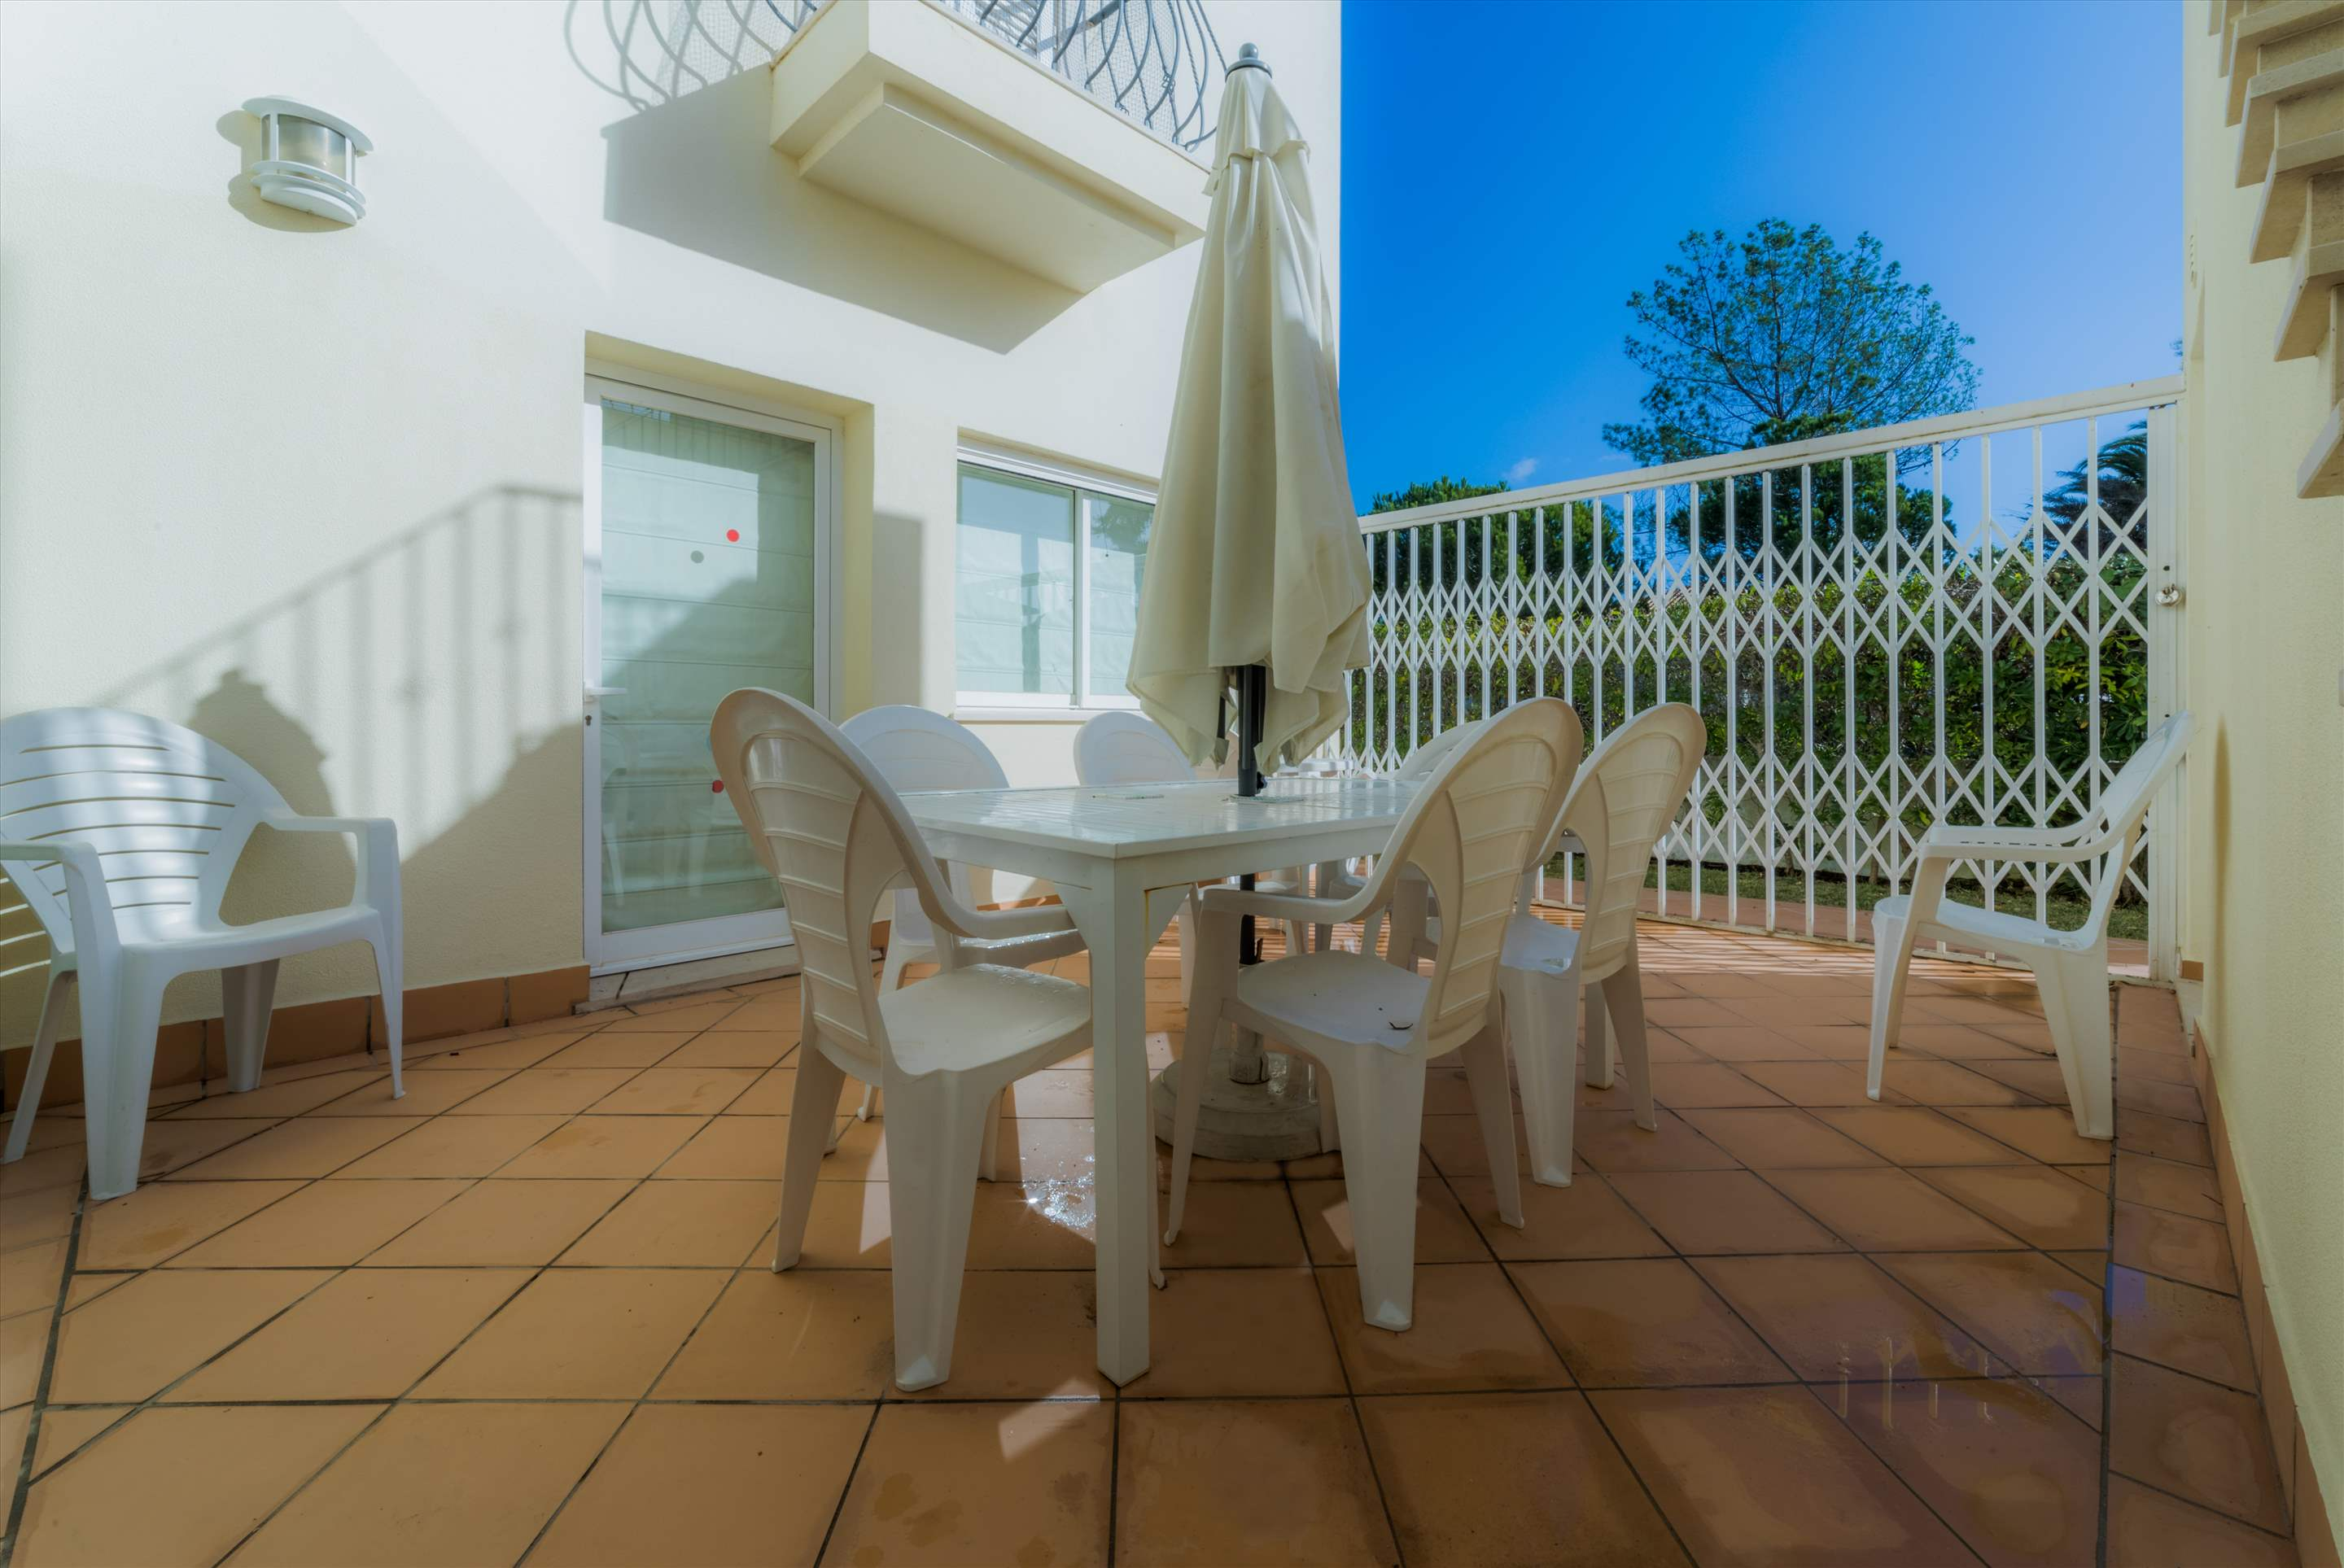 Villa 29, 4 bedroom villa in Vale do Lobo, Algarve Photo #4